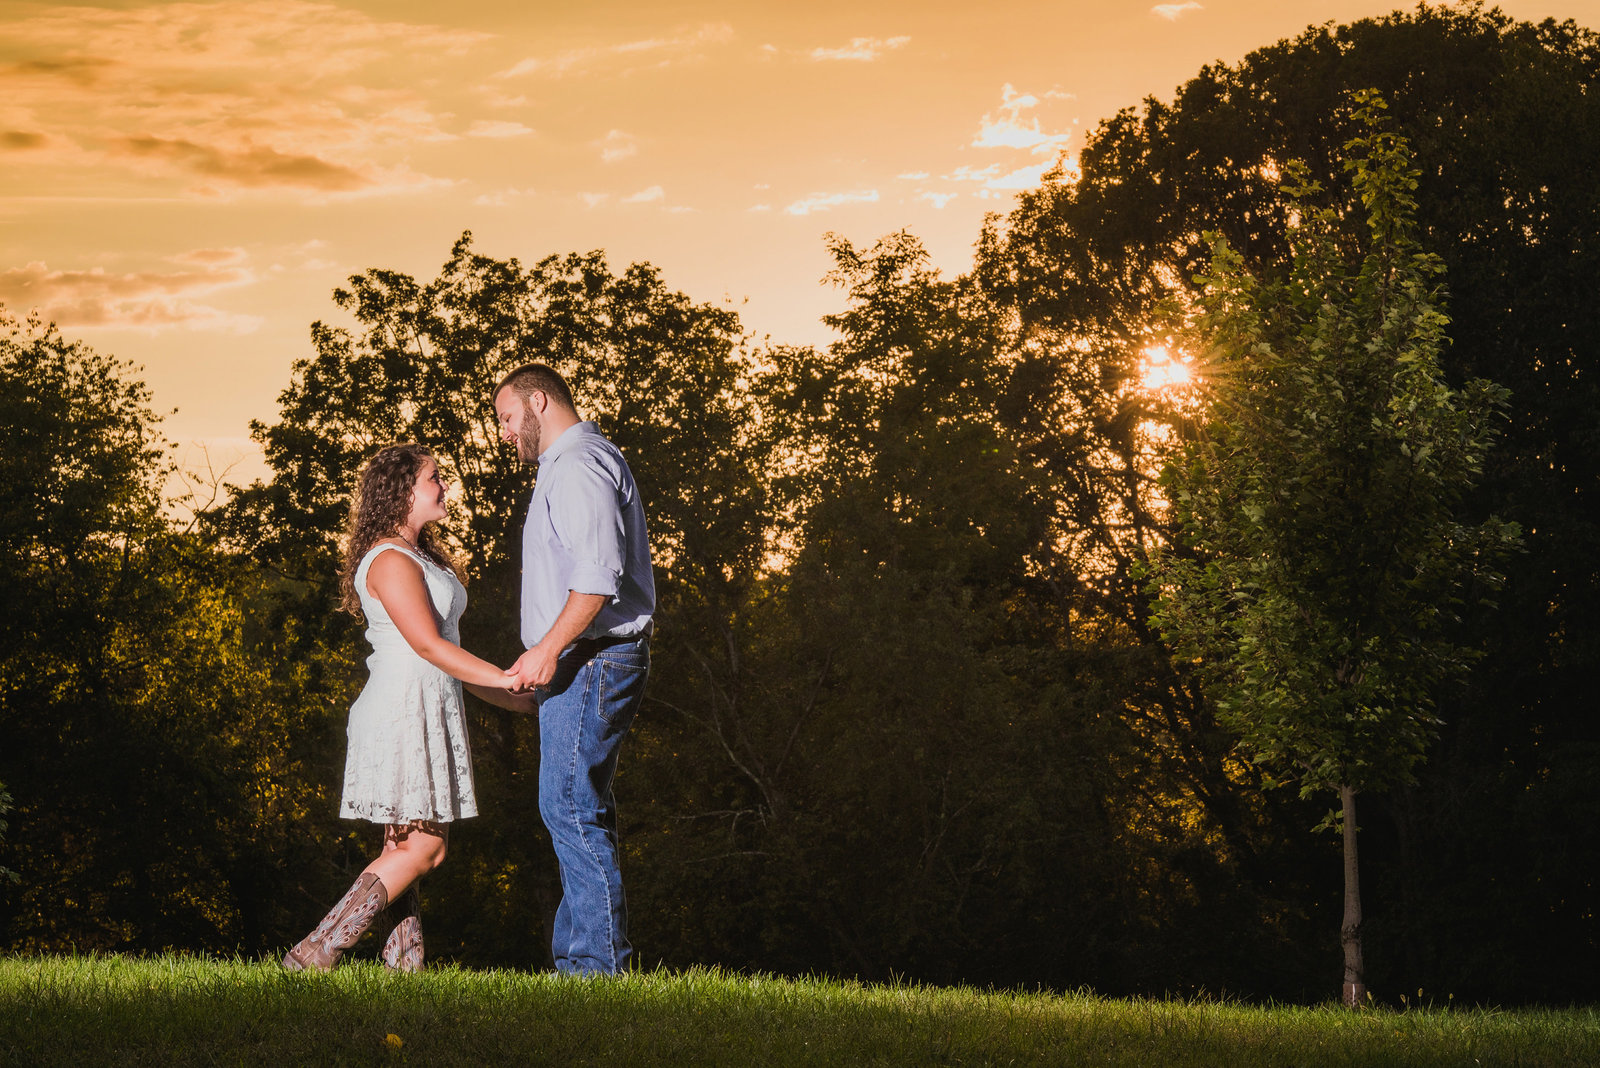 NJ_Rustic_Engagement_Photography159